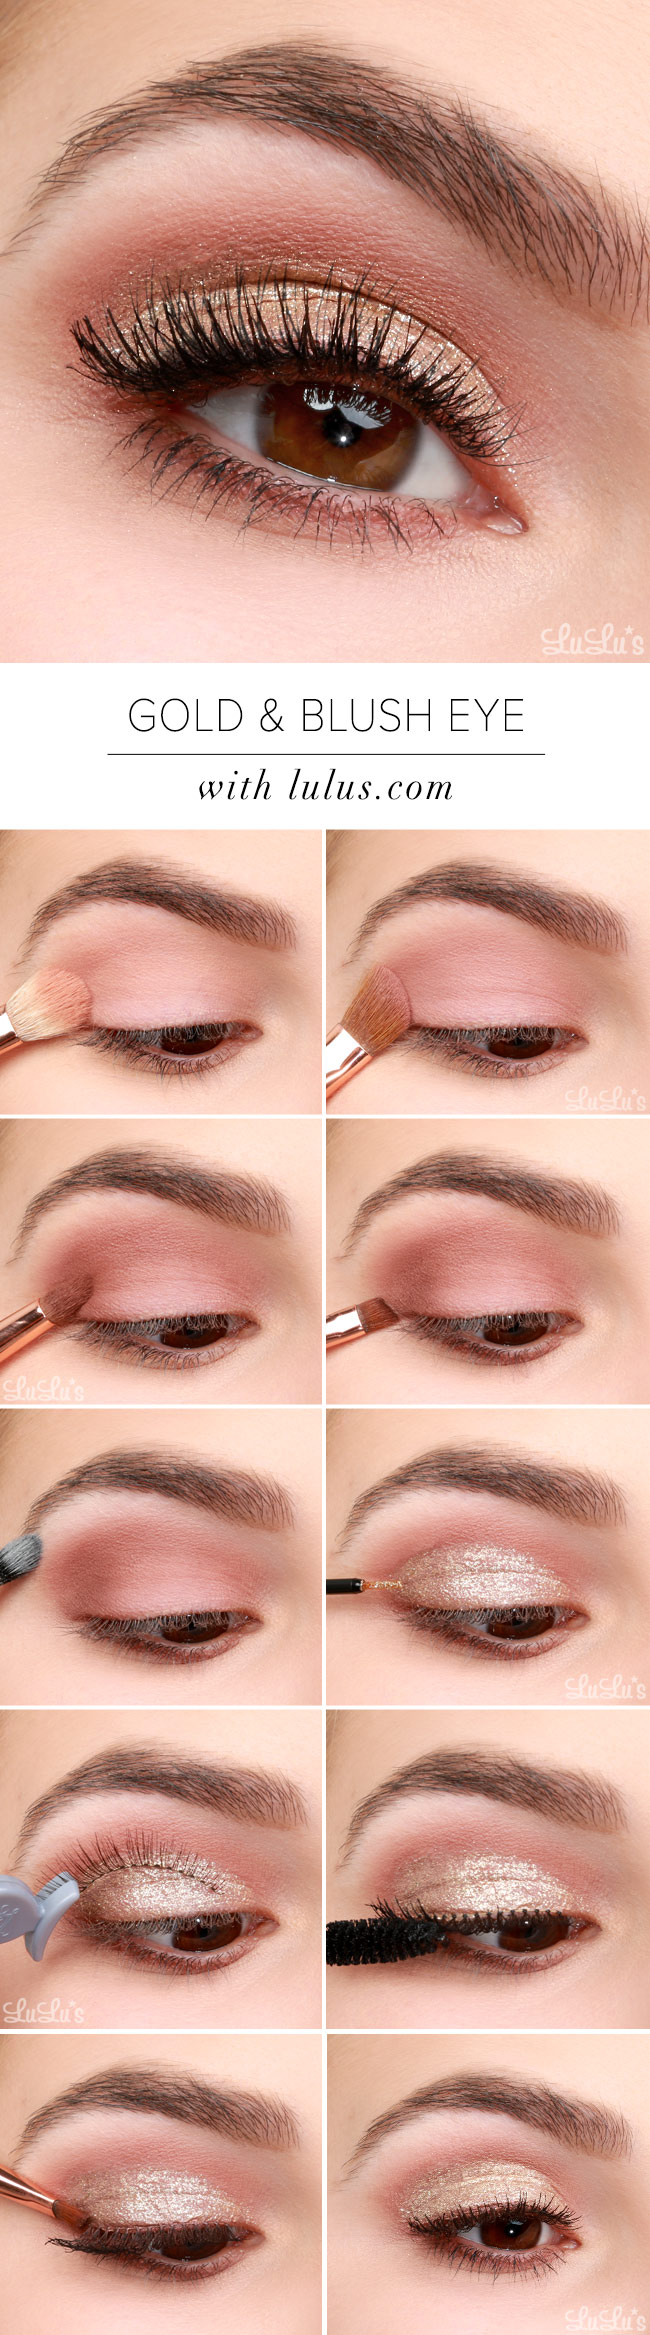 Lulus how to gold and blush valentines day eye makeup tutorial lulus how to gold and blush valentines day eye makeup tutorial at lulus baditri Images